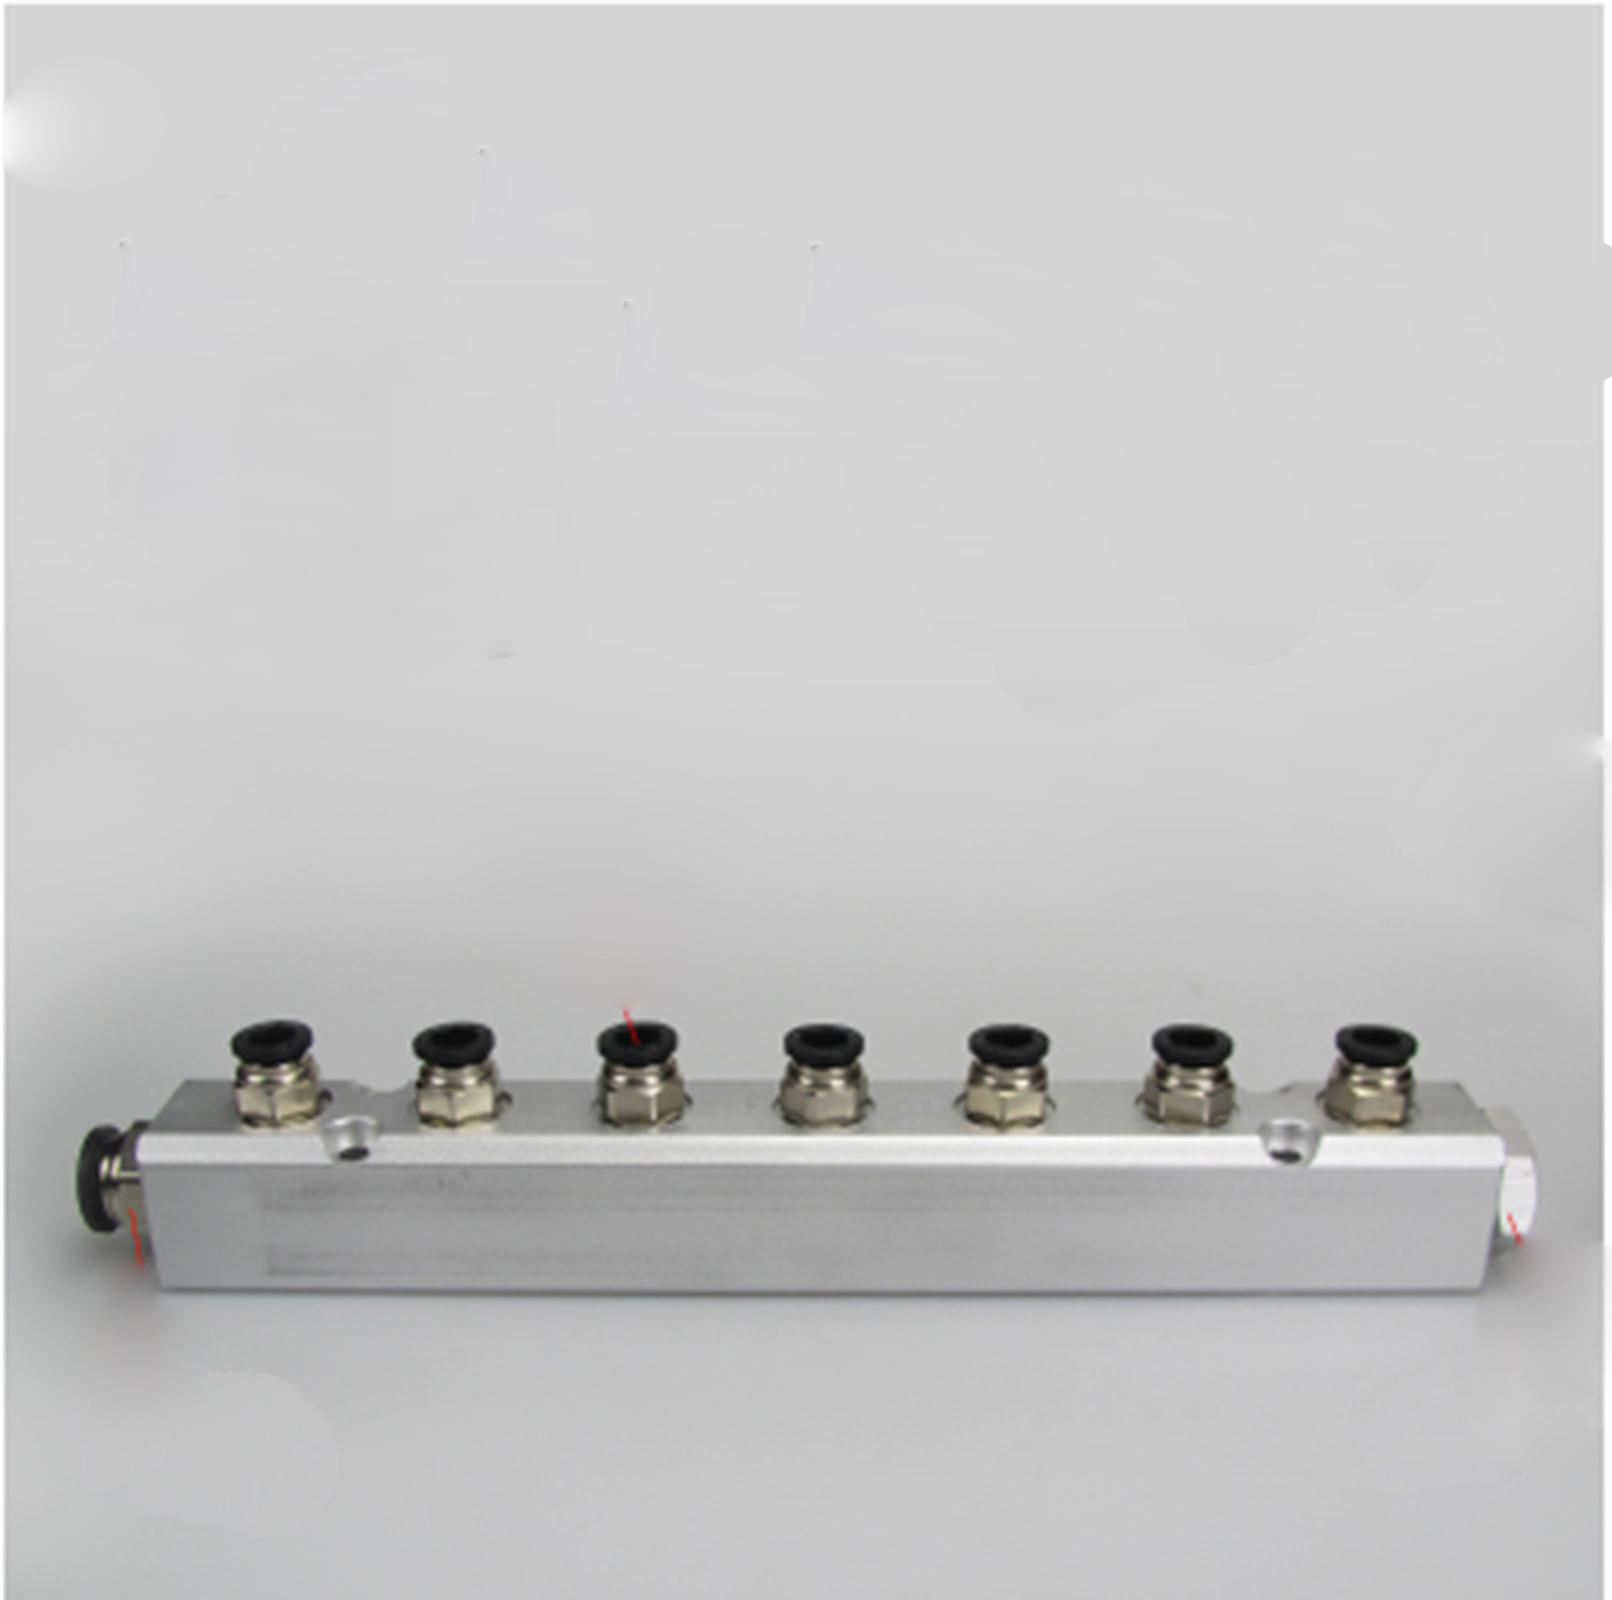 30x30mm G1/4 Out G1/2 In 7 Way Pneumatic Fitting Air Manifold Block Splitter цена